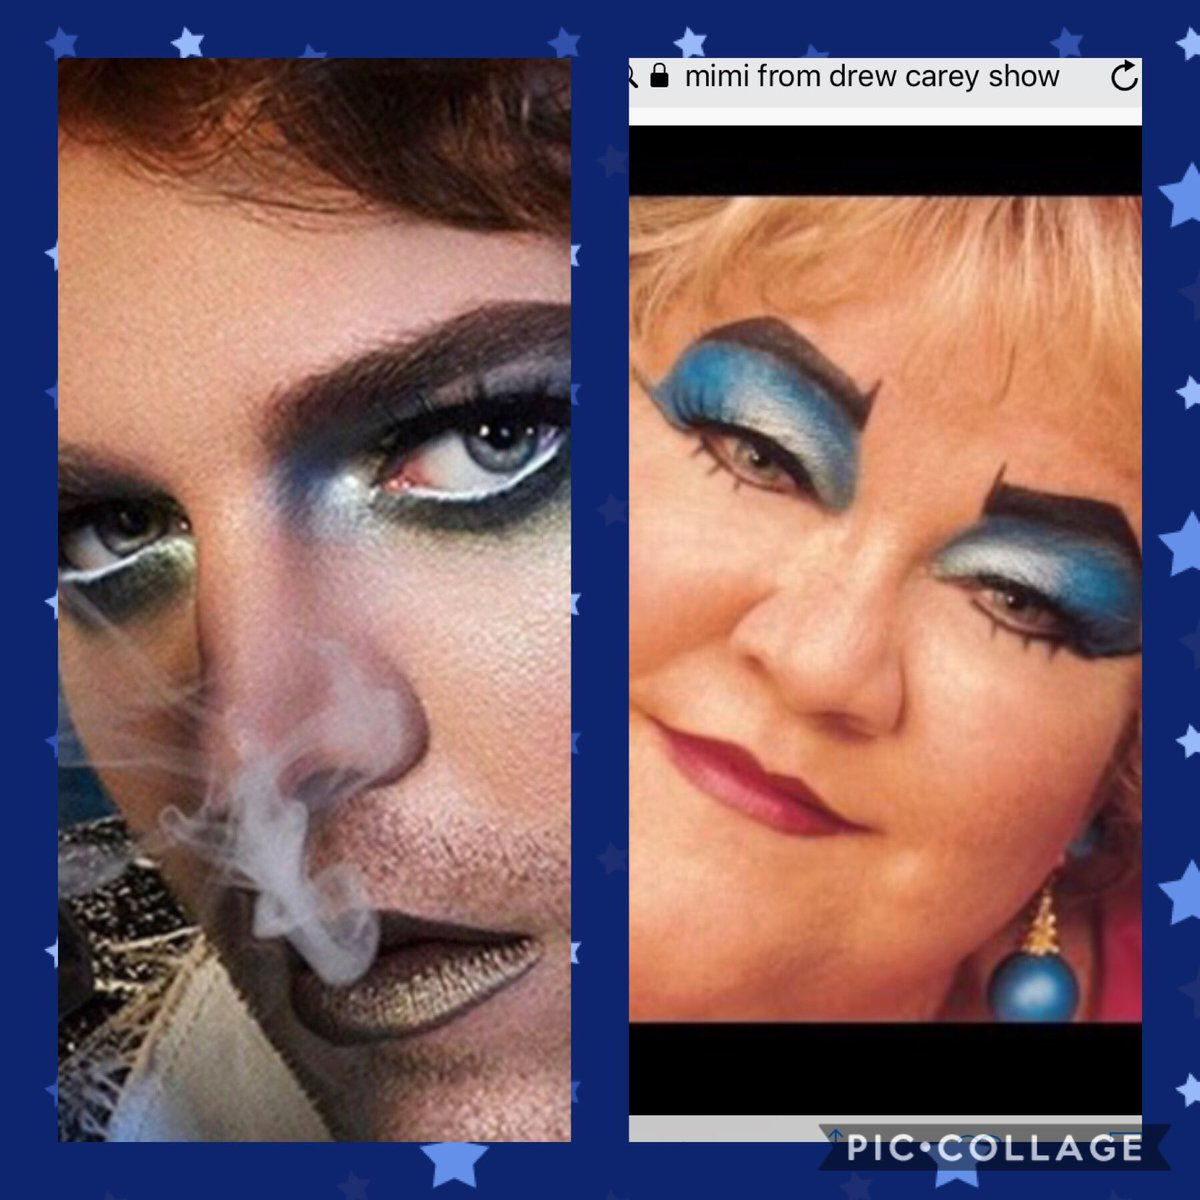 How I want to look with my mini controversy palette vs how I'm actually going to look....obviously I need more practice. @JeffreeStar @shanedawson #JeffreeStarCosmetics #ShanexJeffree #shanexjeffreebreaktheinternet